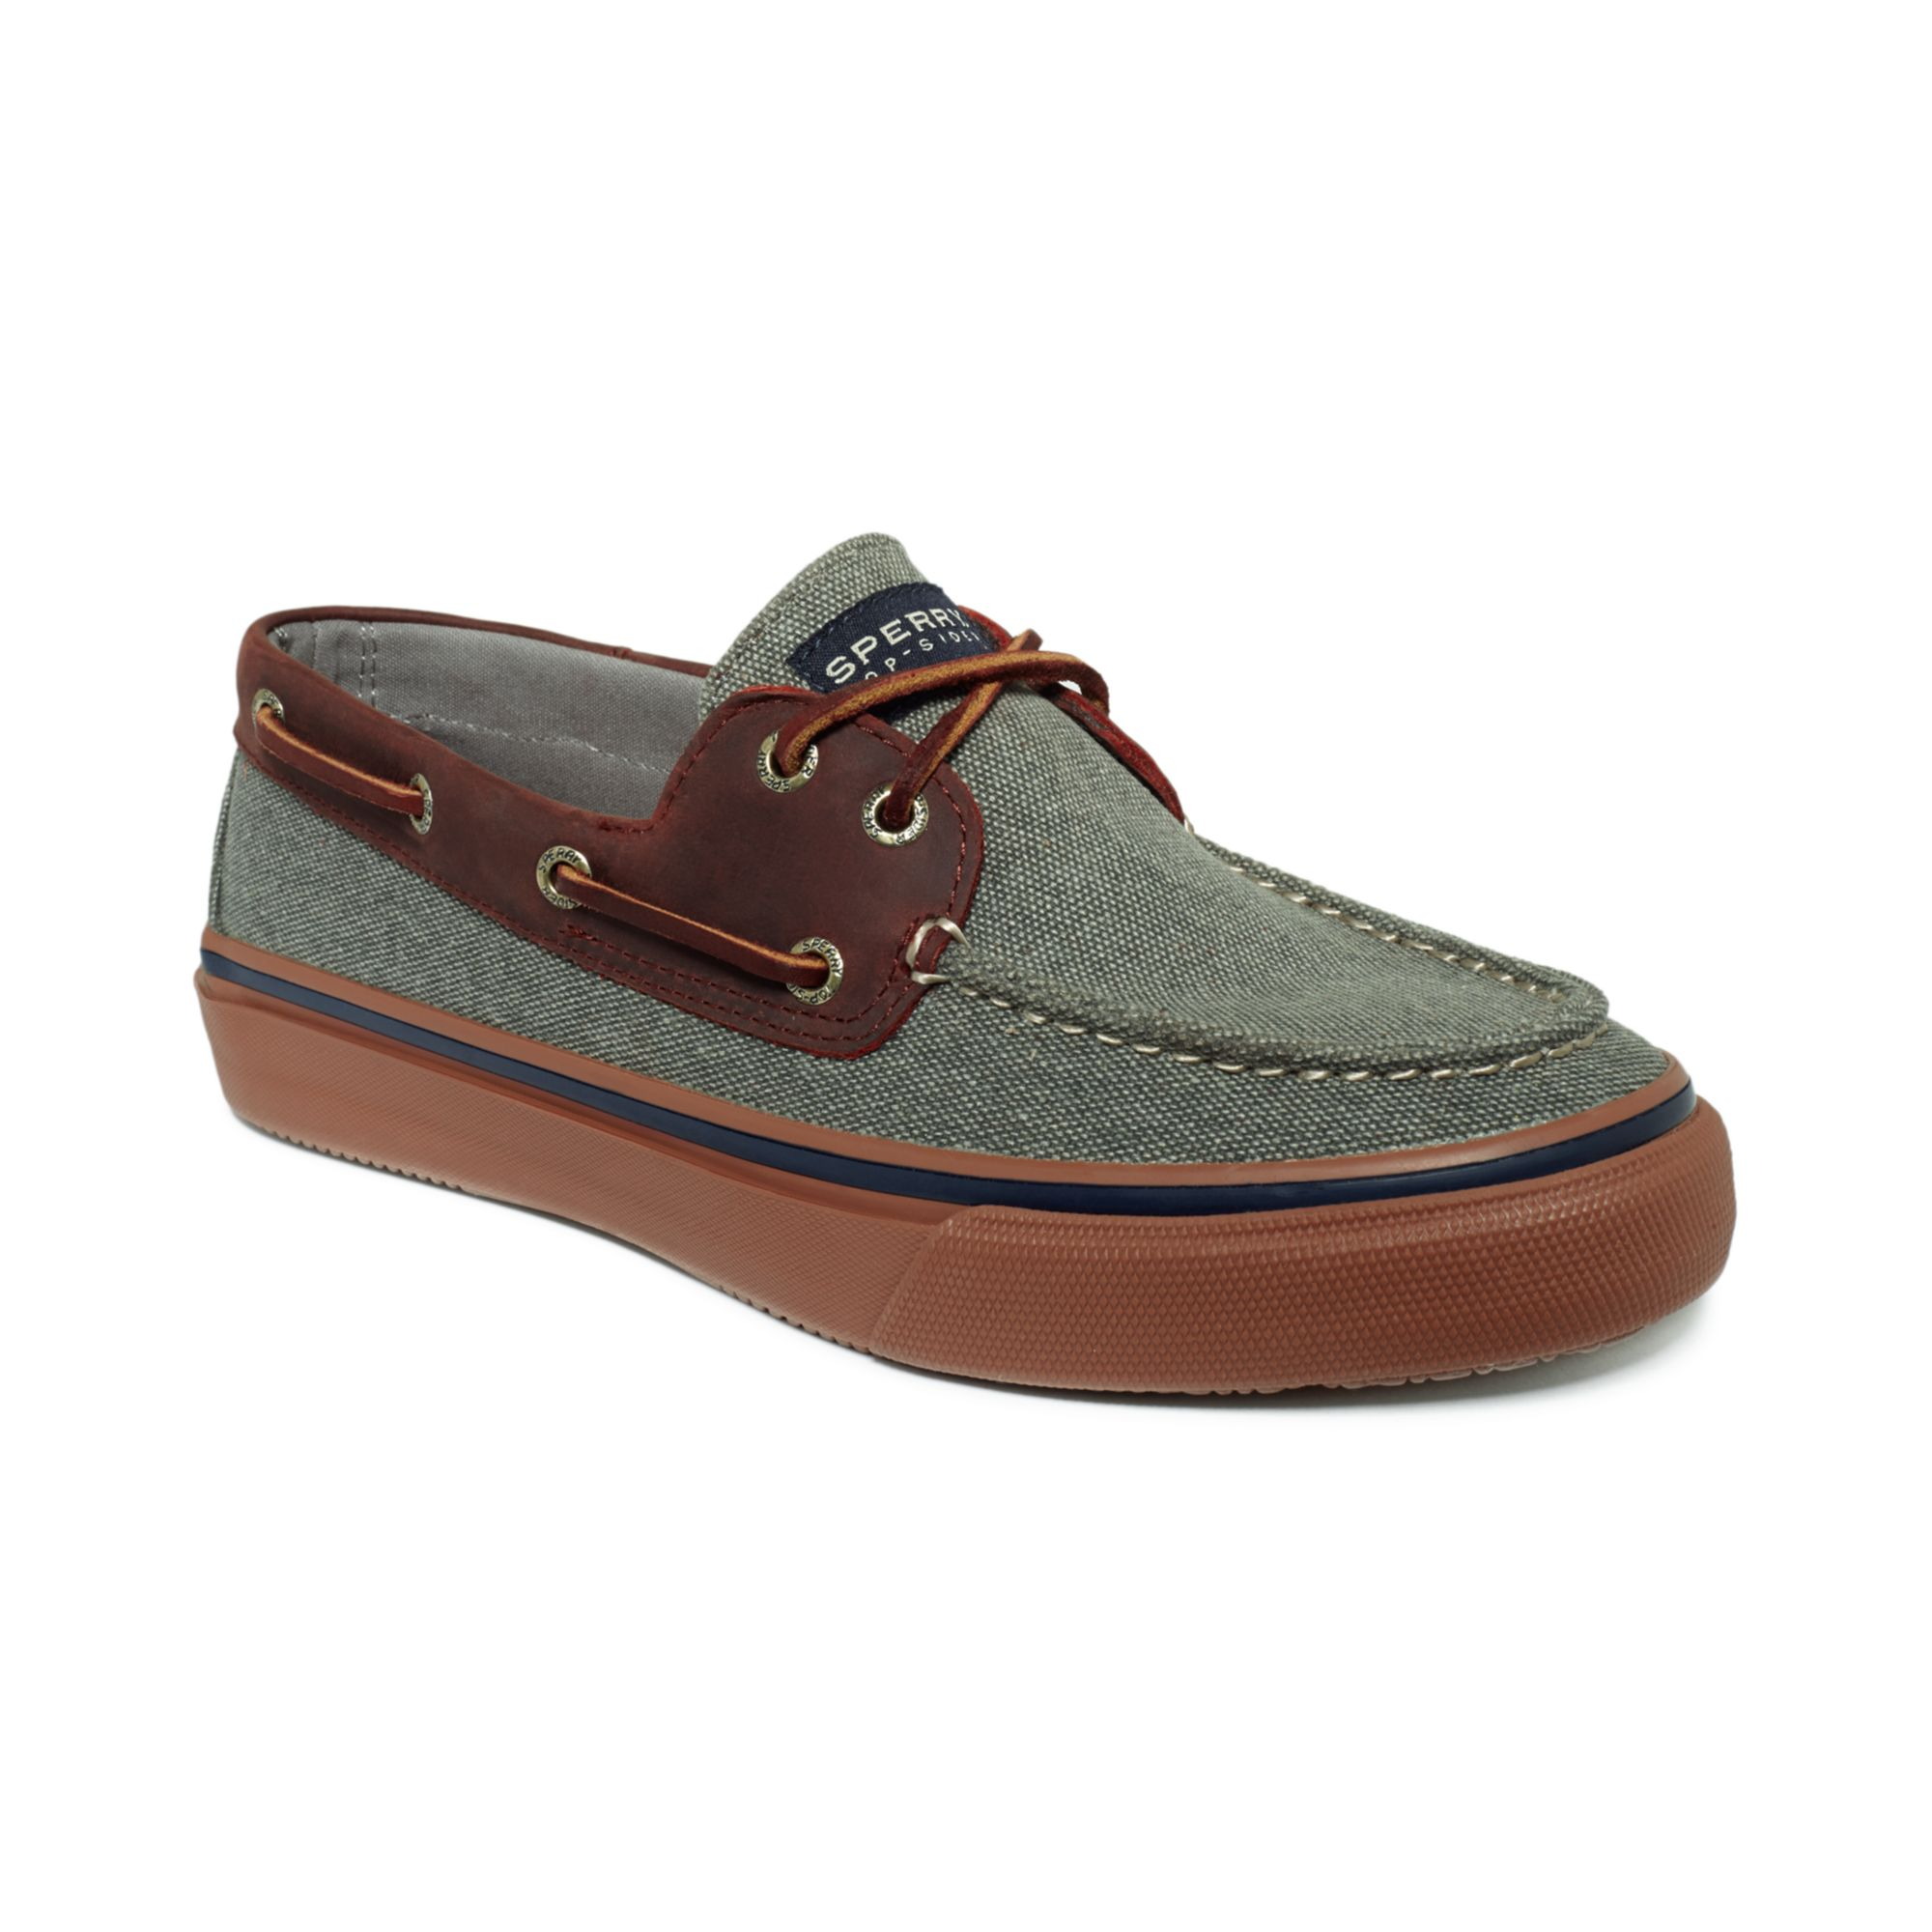 Sperry Grey Canvas Boat Shoes Mens